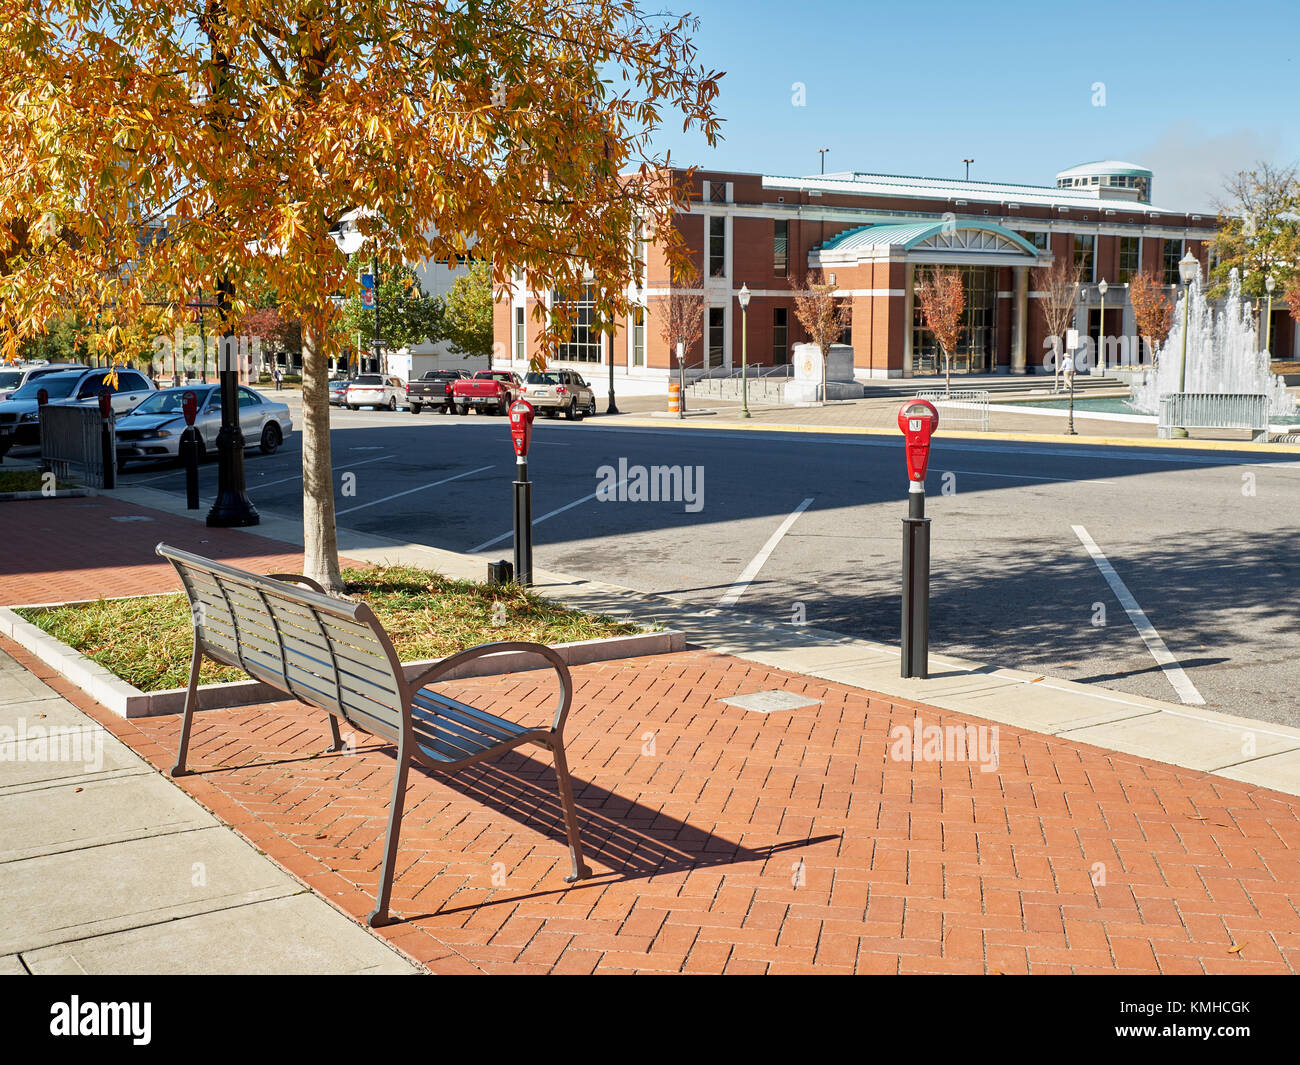 Empty parking spaces and a metal bench on a street in the downtown district of a city. - Stock Image